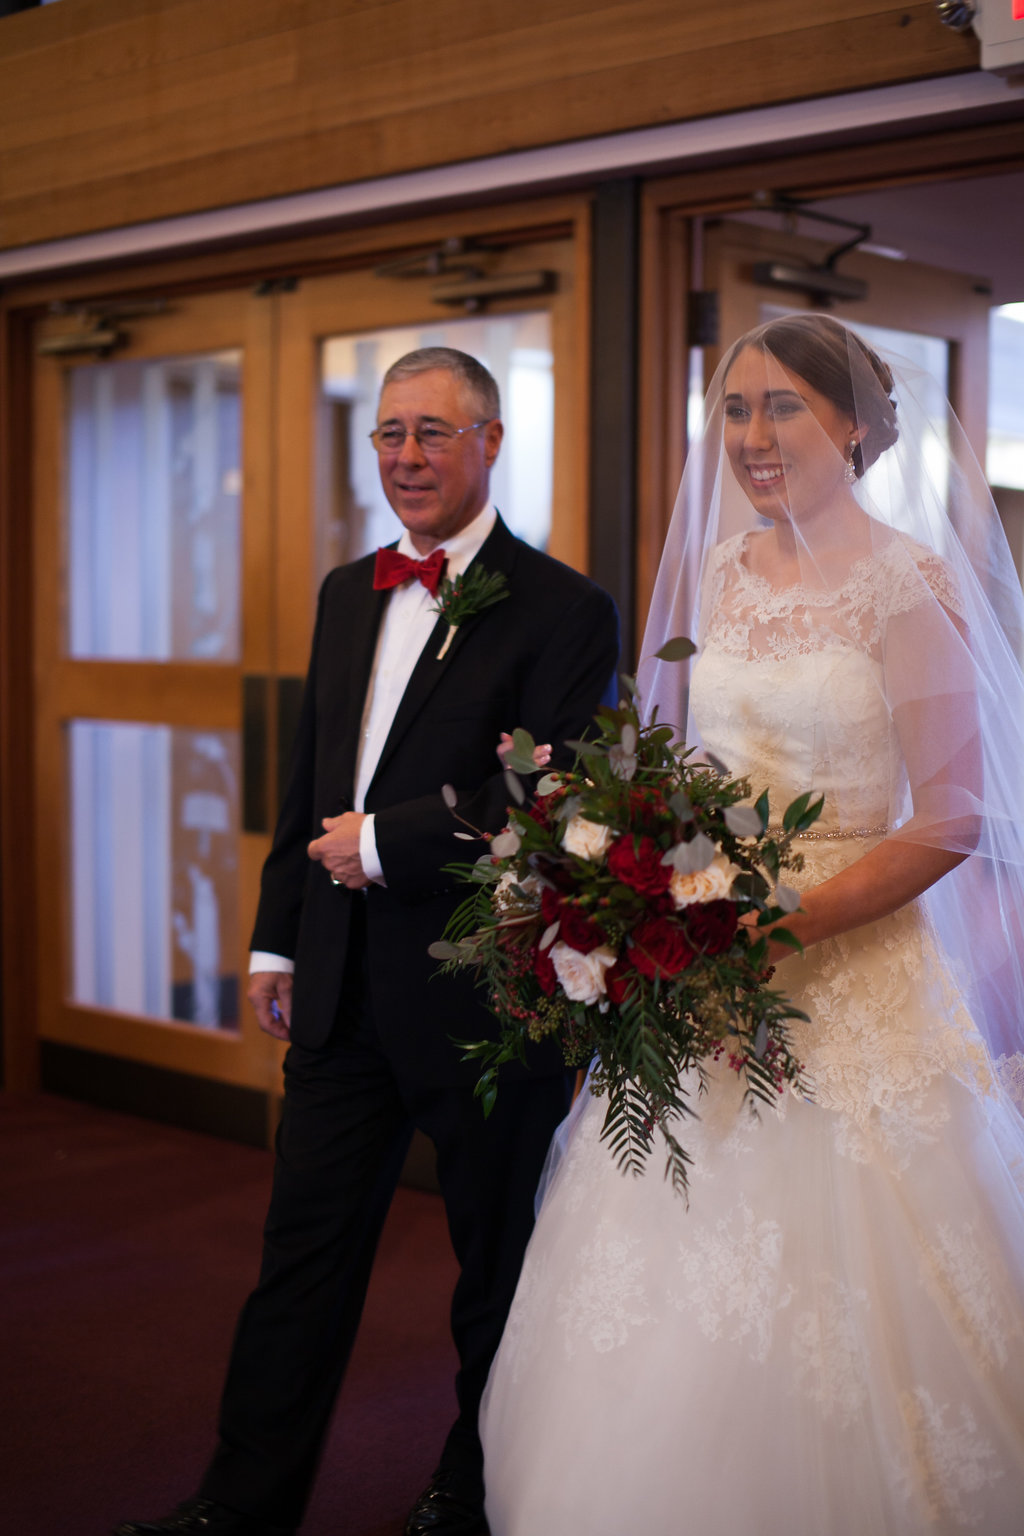 St. Luke's United Methodist Wedding Ceremony